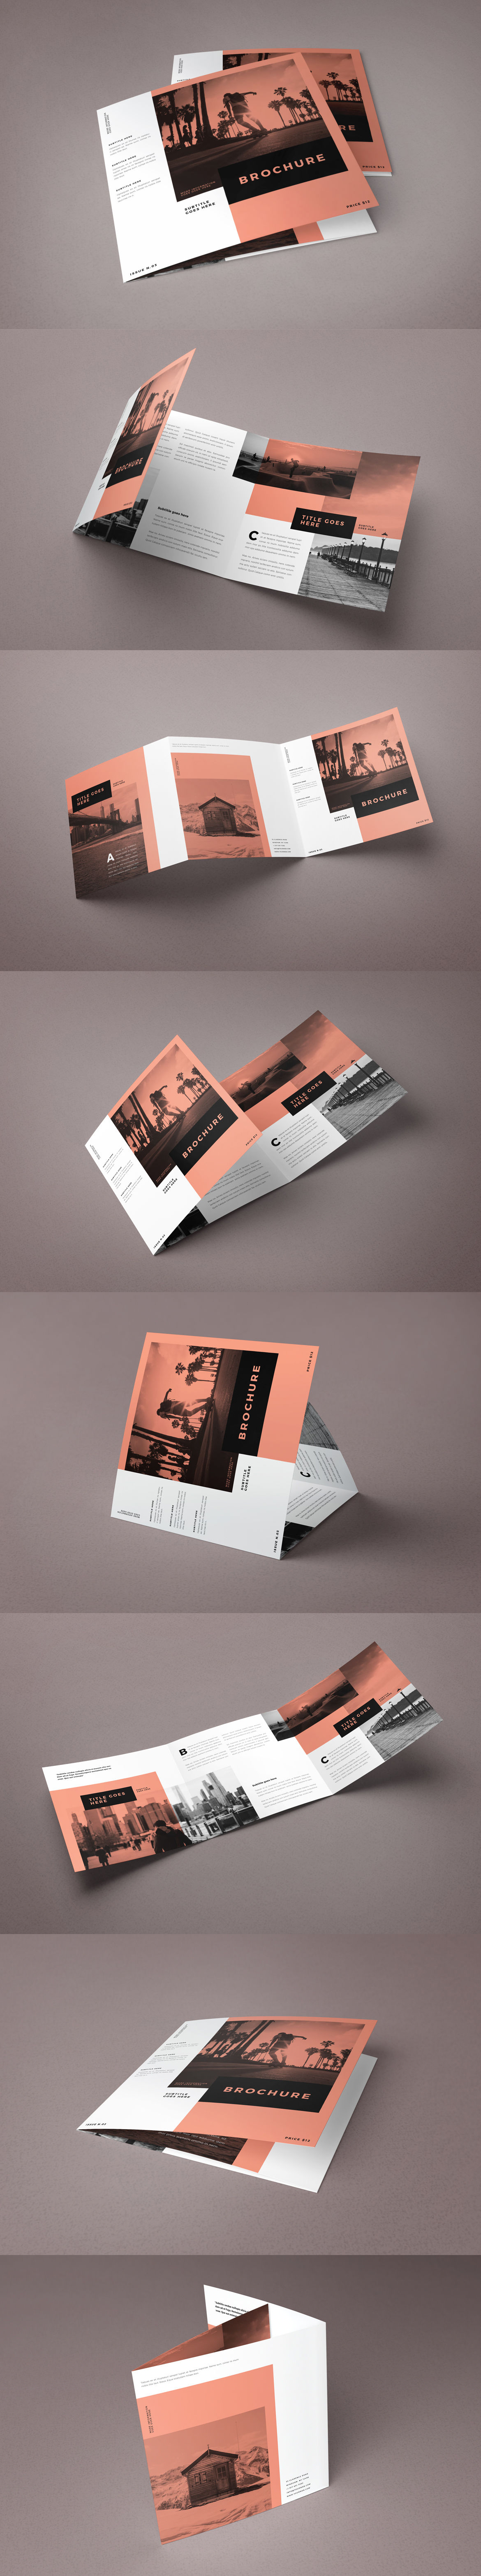 Square Minimal White Simple Trifold Brochure Template InDesign INDD ...